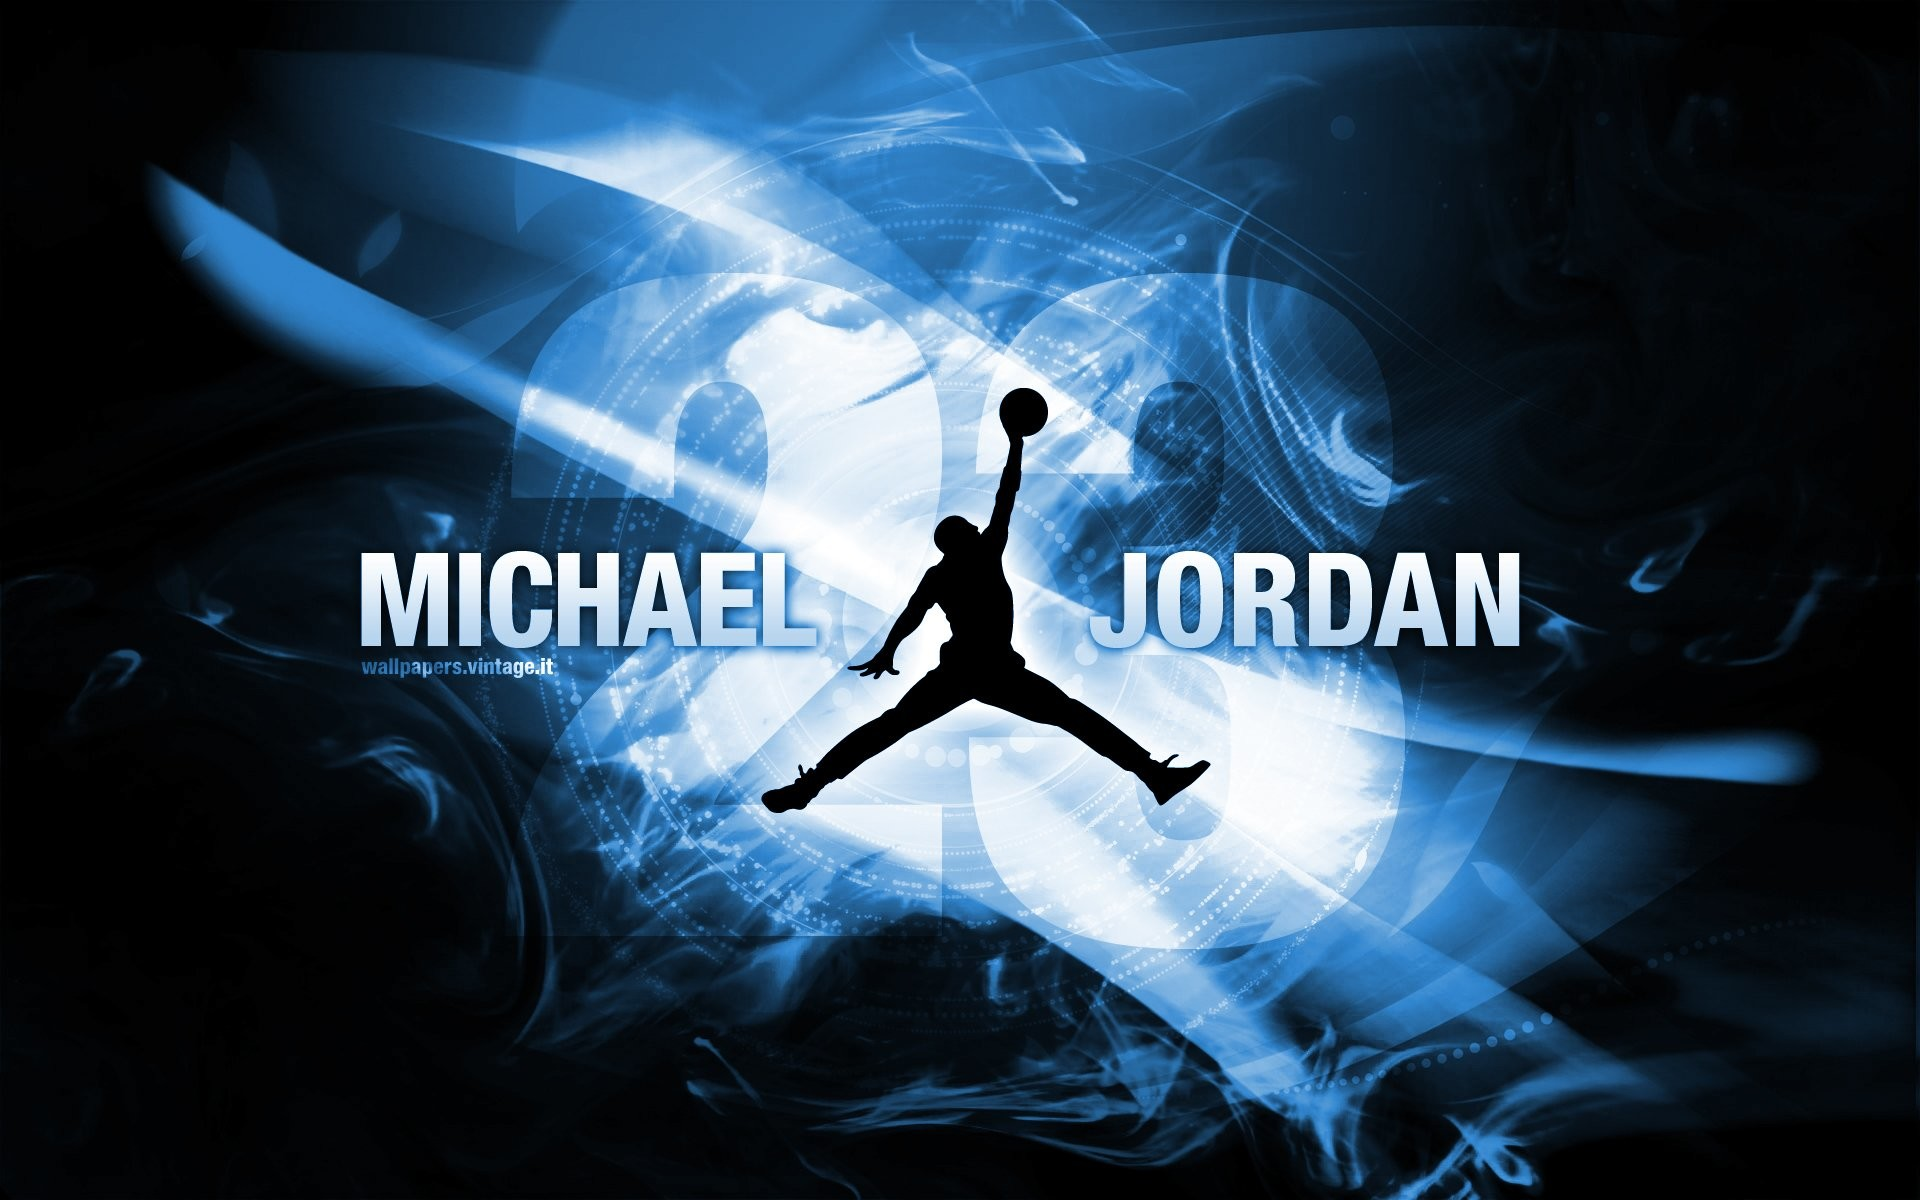 1920x1200 Sports - Michael Jordan Jordan Logo Wallpaper